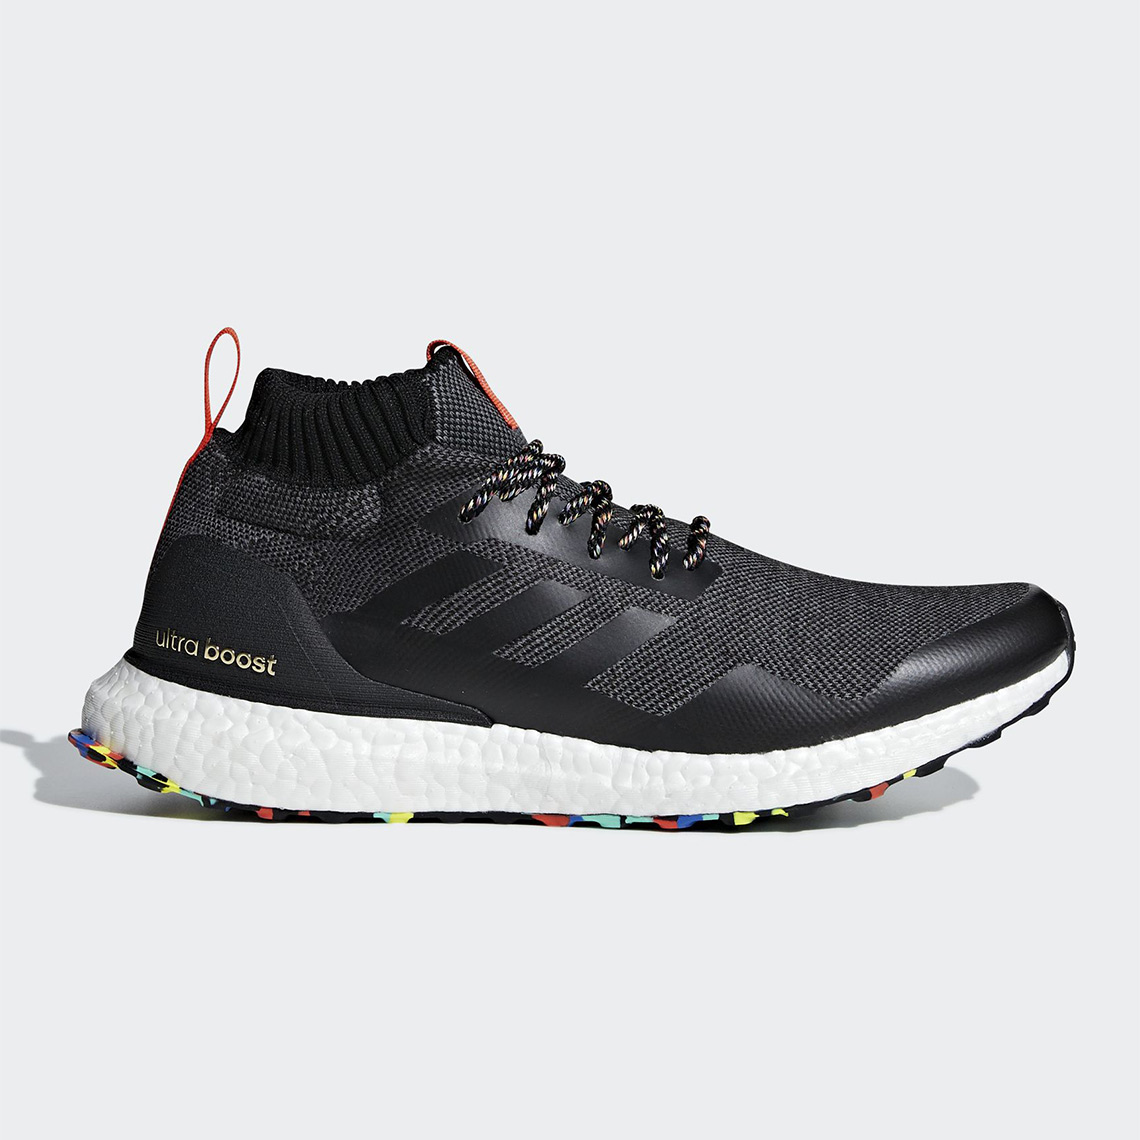 3ab72ad55 ... switzerland adidas ultra boost mid release date october 4 2018 220.  color black multicolor black